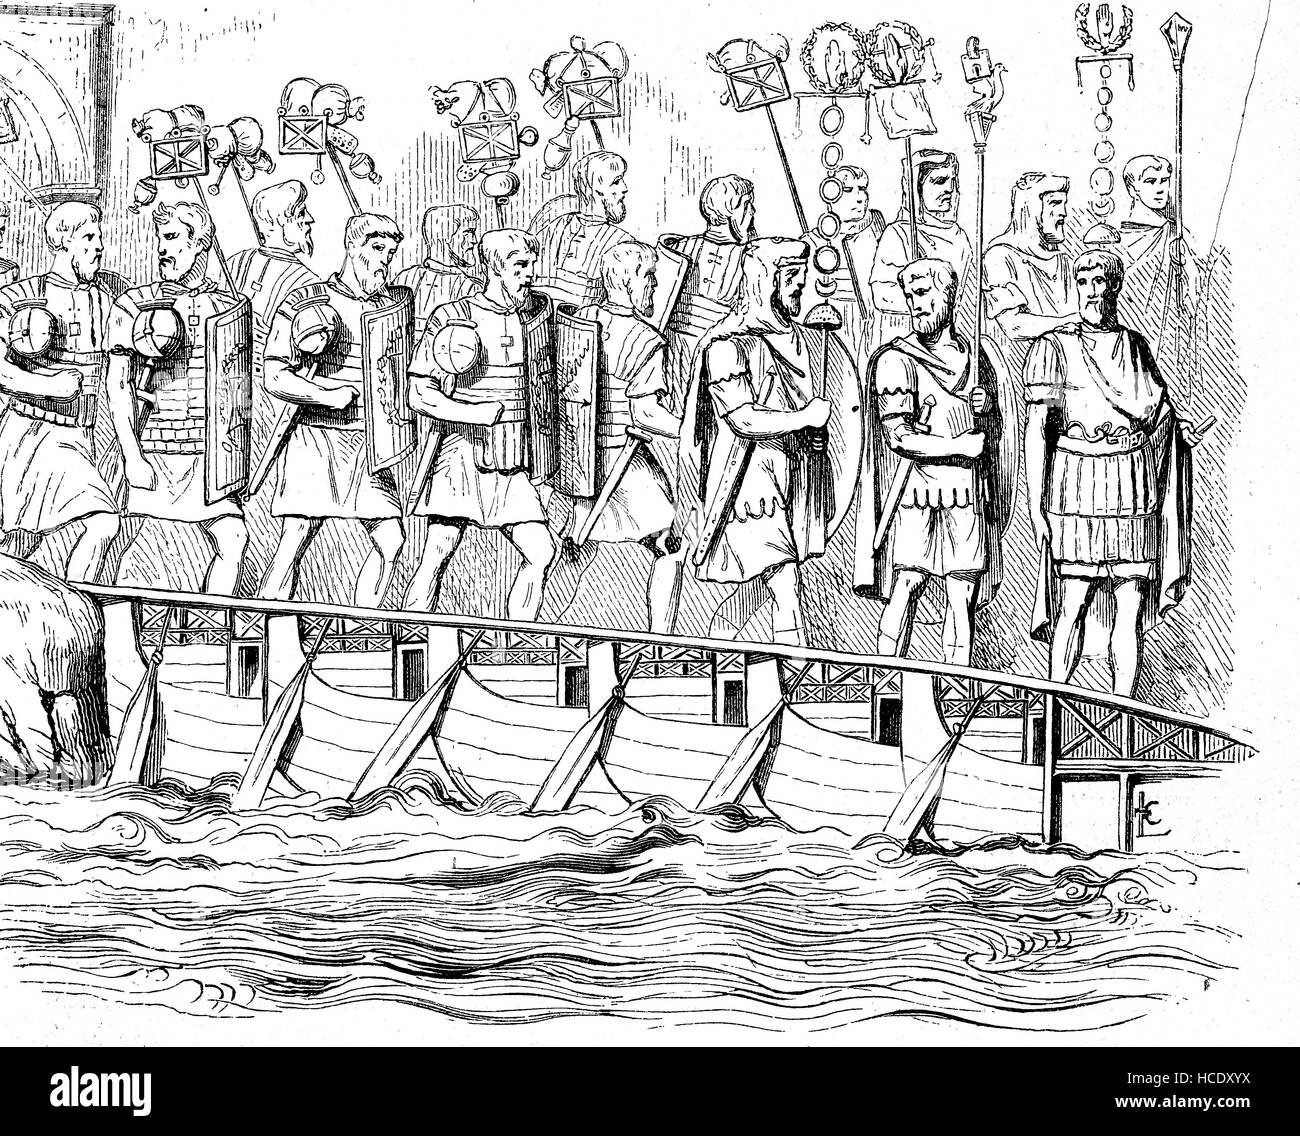 River crossing of a Roman legion, the story of the ancient Rome, roman Empire, Italy - Stock Image